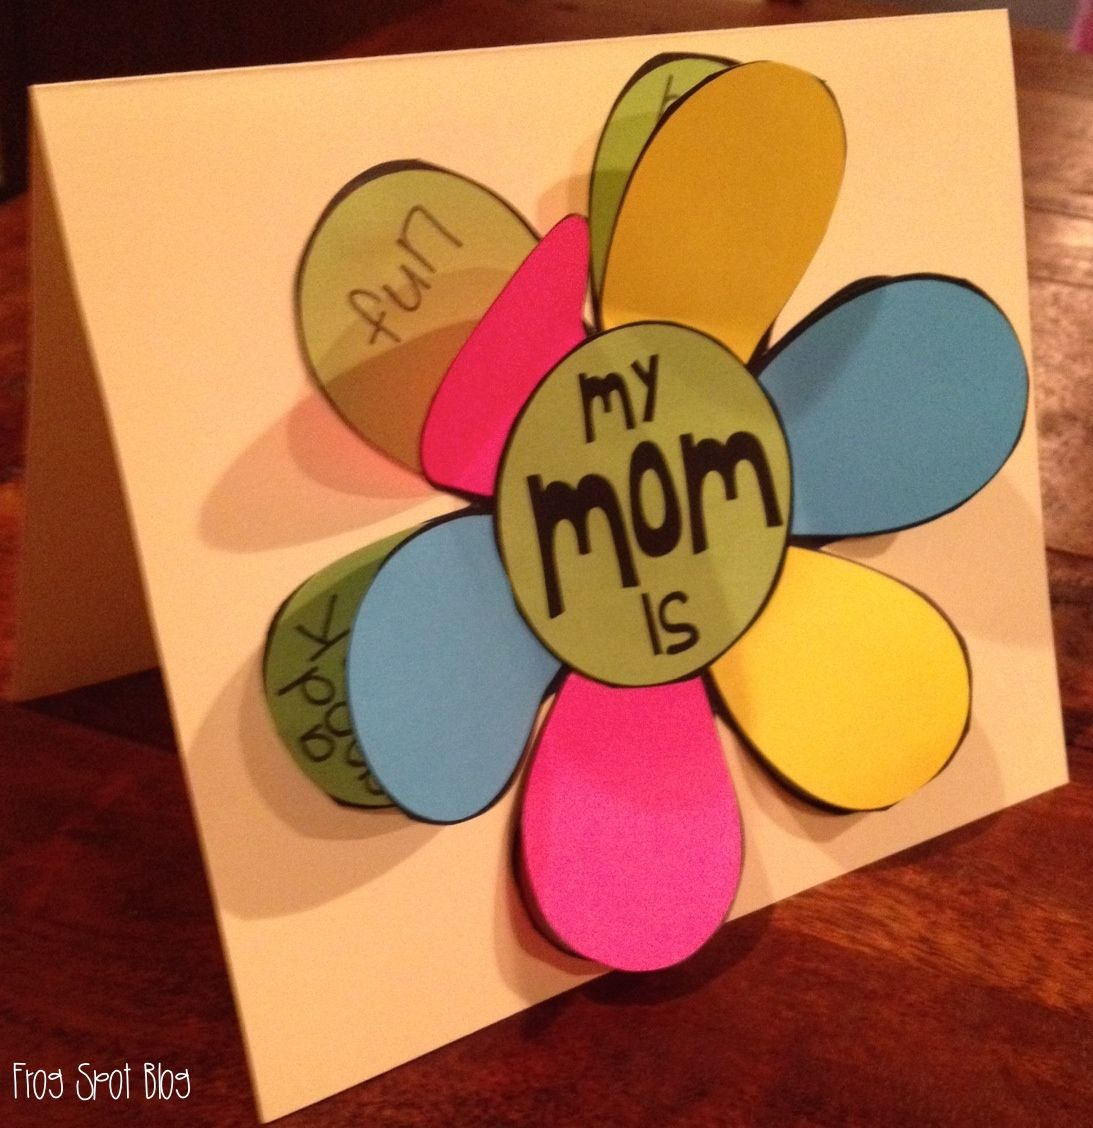 Motherus day card a flip the flap flower card for mom and mum